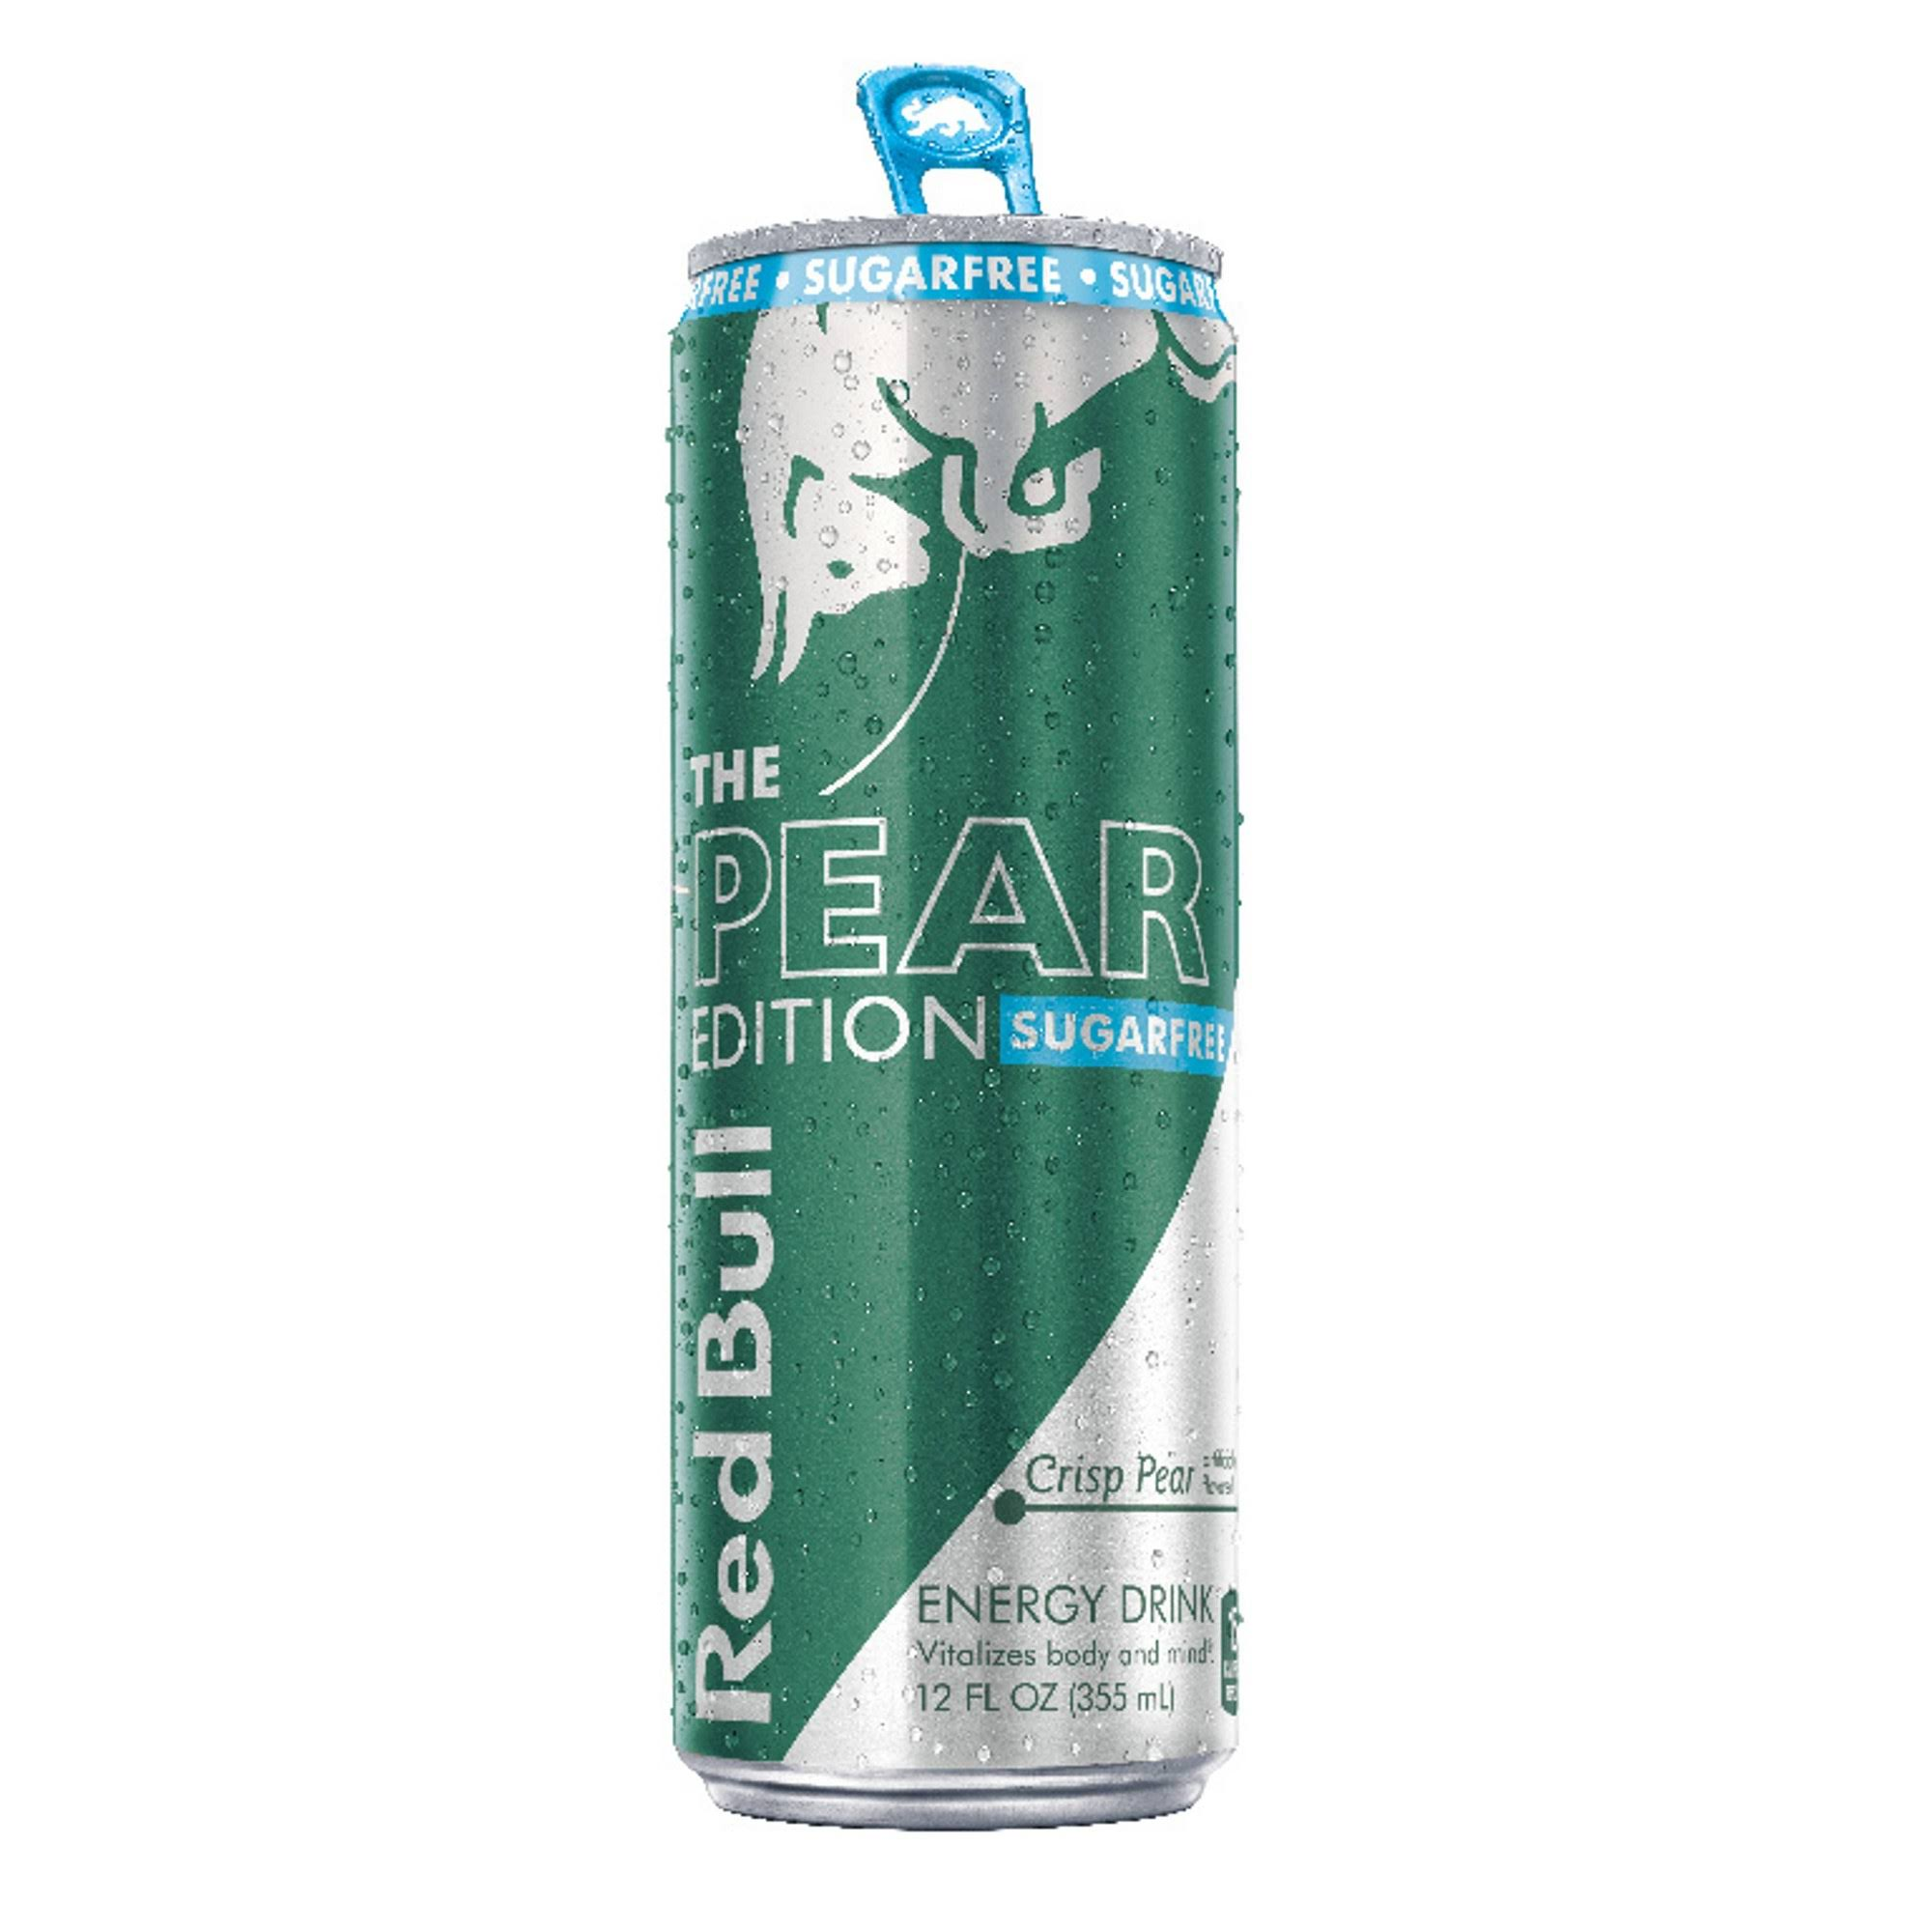 Red Bull The Pear Edition Sugarfree Energy Drink - Crisp Pear, 12oz